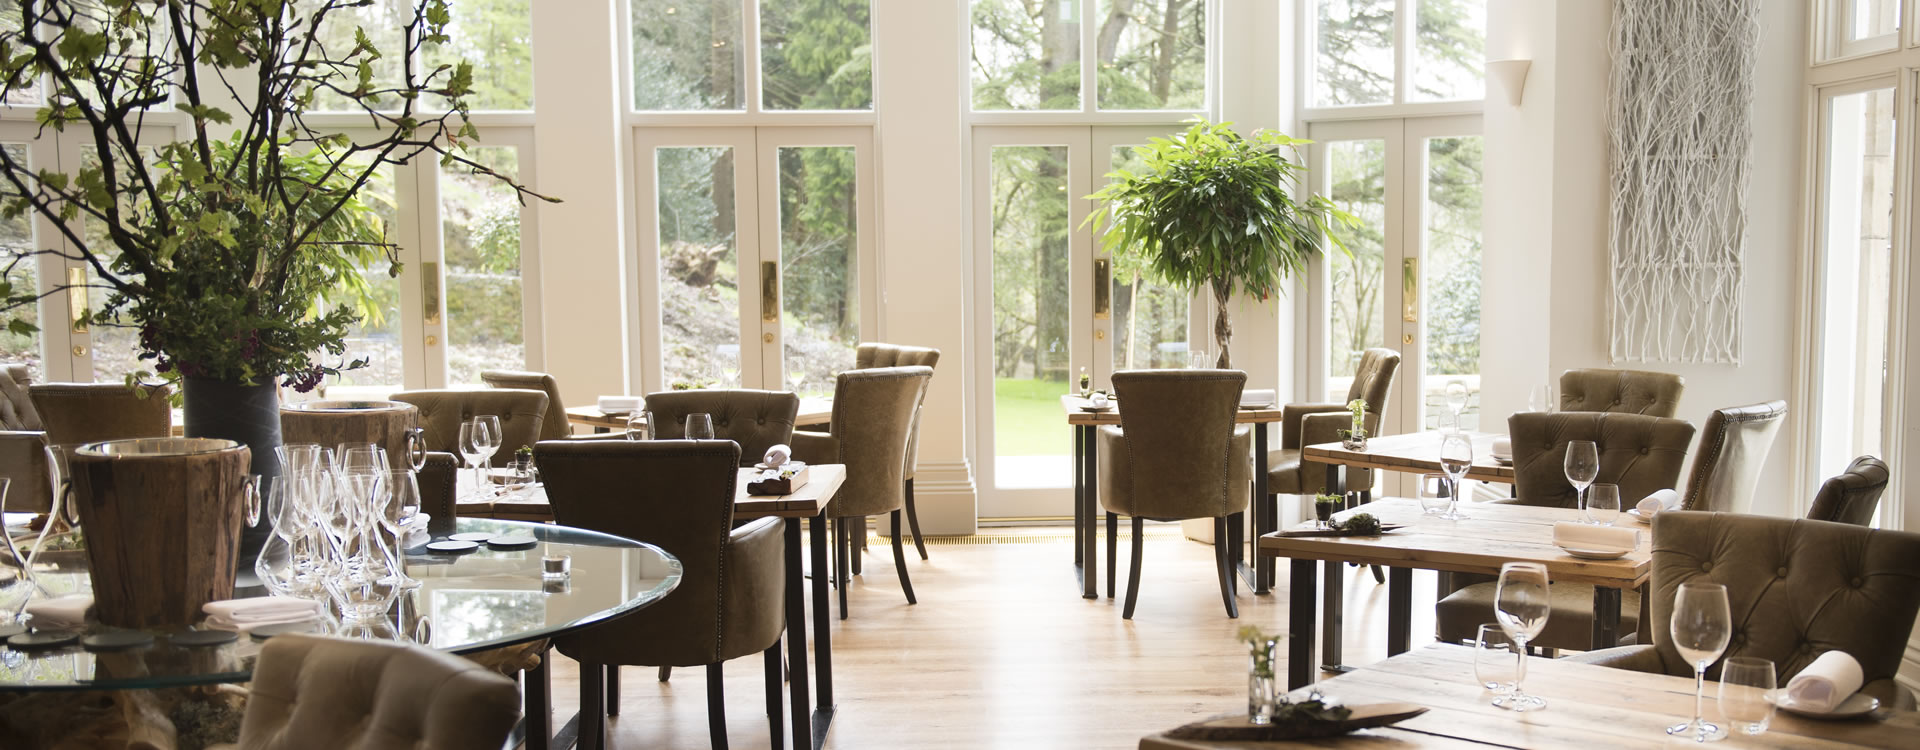 Michelin Star Restaurants in The Lake District for 2020